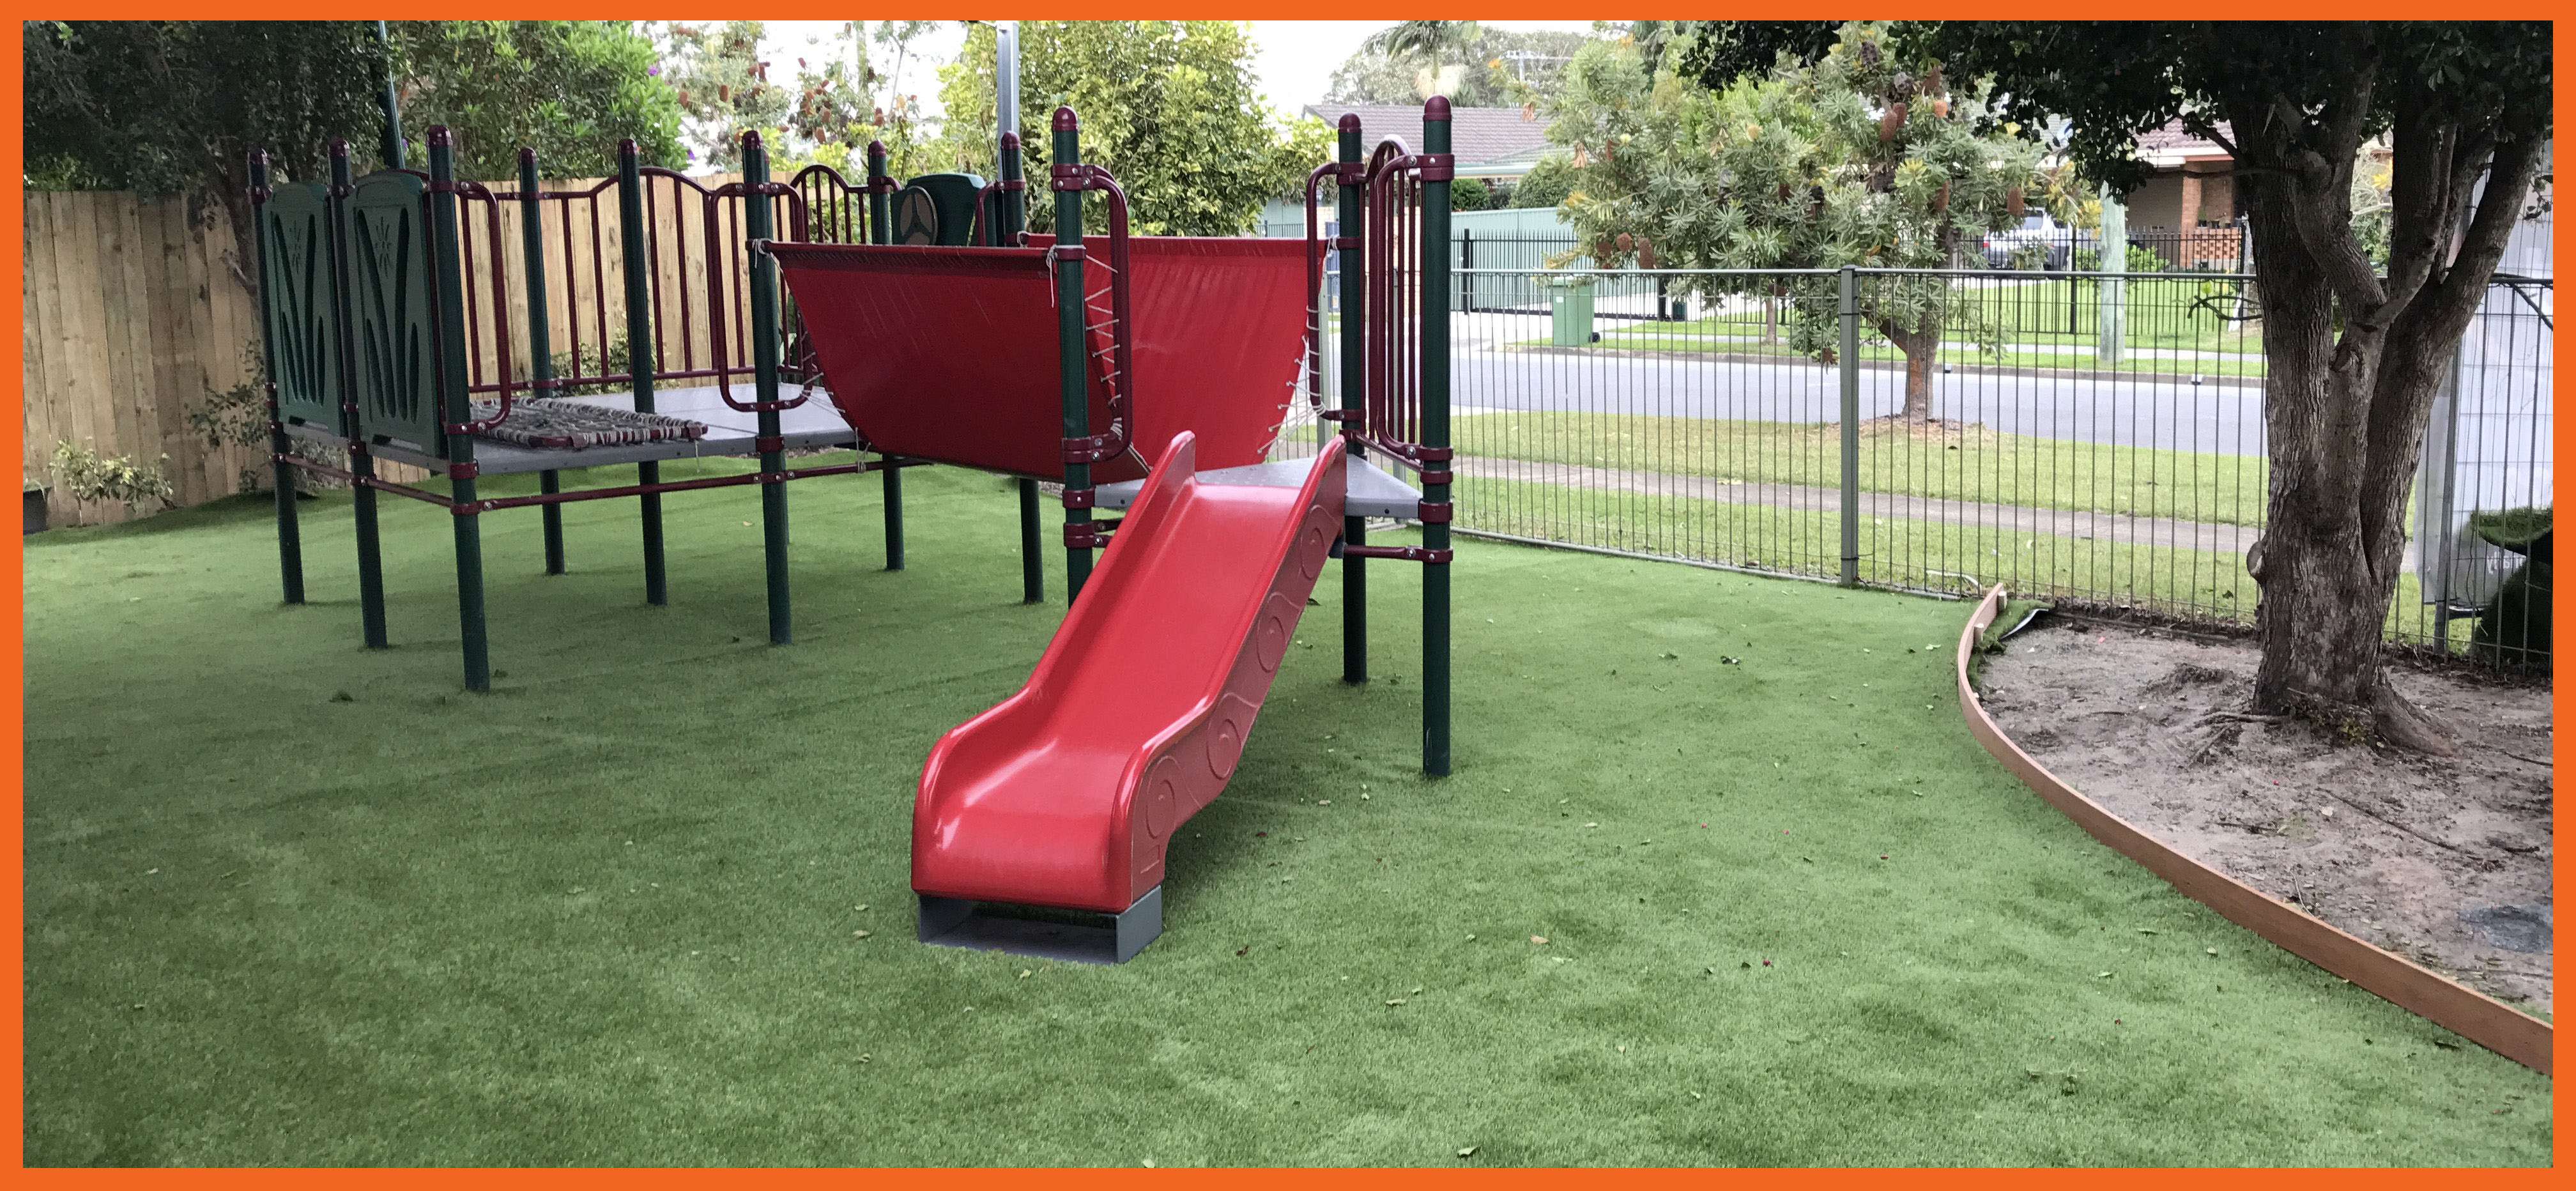 Enrolments Increase as Aussie Kindies Early Learning Tugun Gets A New Look Childcare Centre Makeovers Community Gardening & Landscaping Services Our Projects  slides Playground Upgrade playground Forts Bathroom Upgrade Astroturf